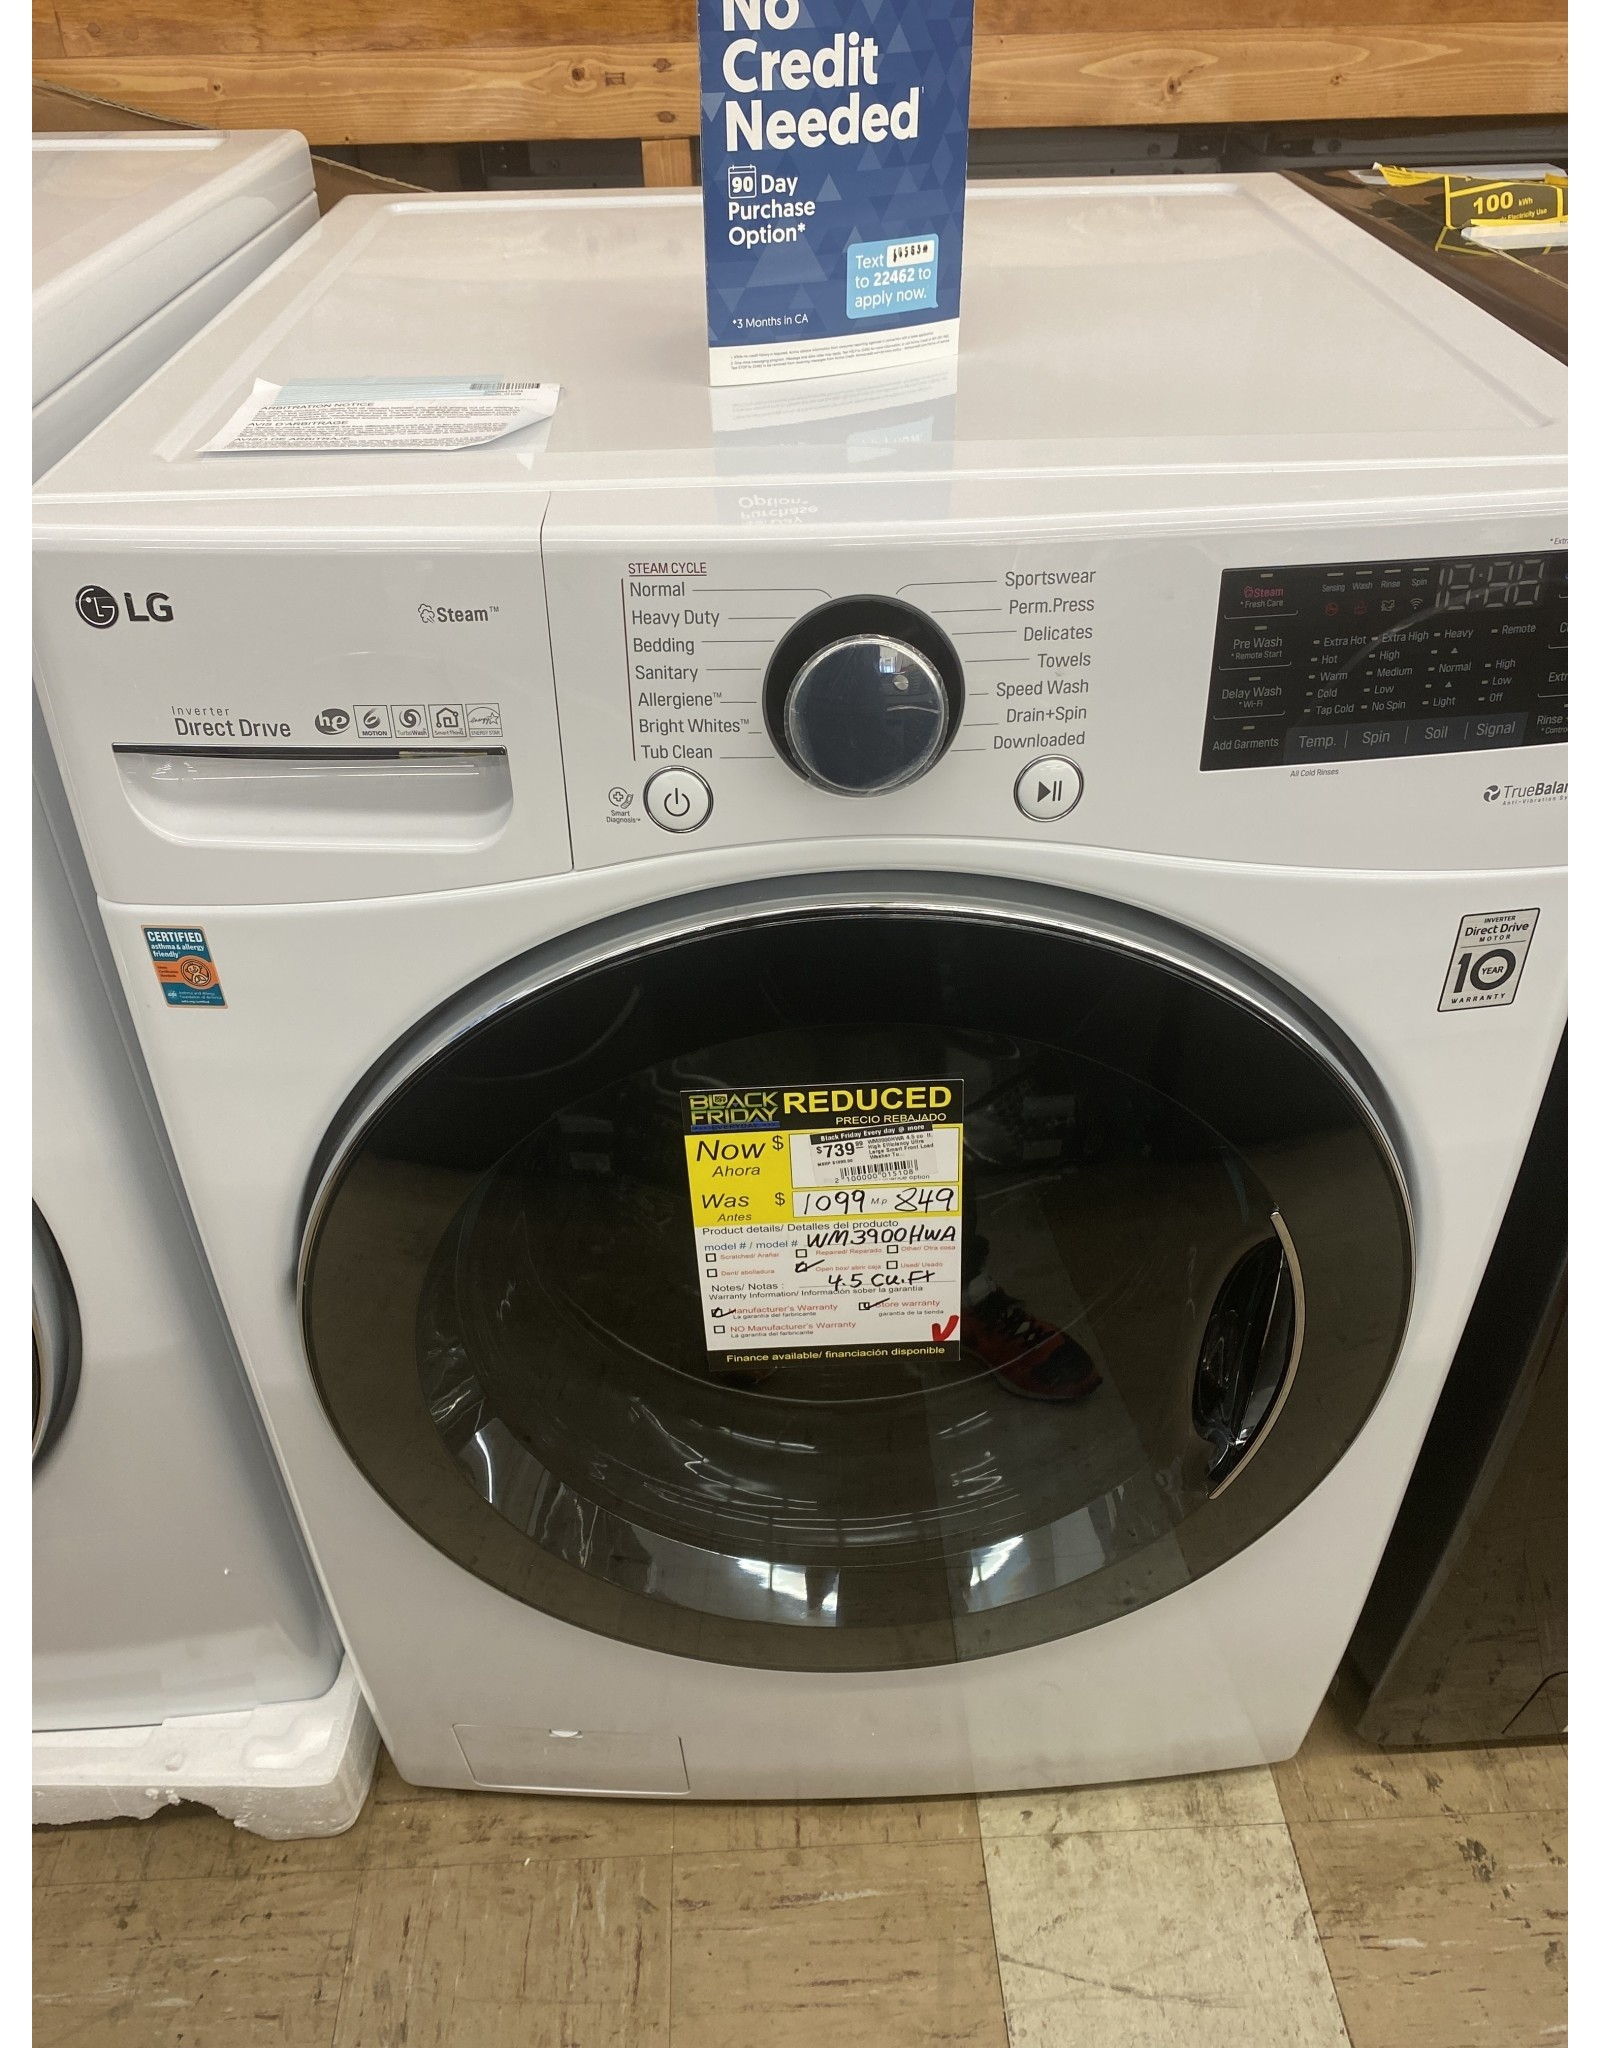 LG Electronics WM3900HWA 4.5 cu. ft. High Efficiency Ultra Large Smart Front Load Washer TurboWash360, Steam & Wi-Fi in White, ENERGY STAR